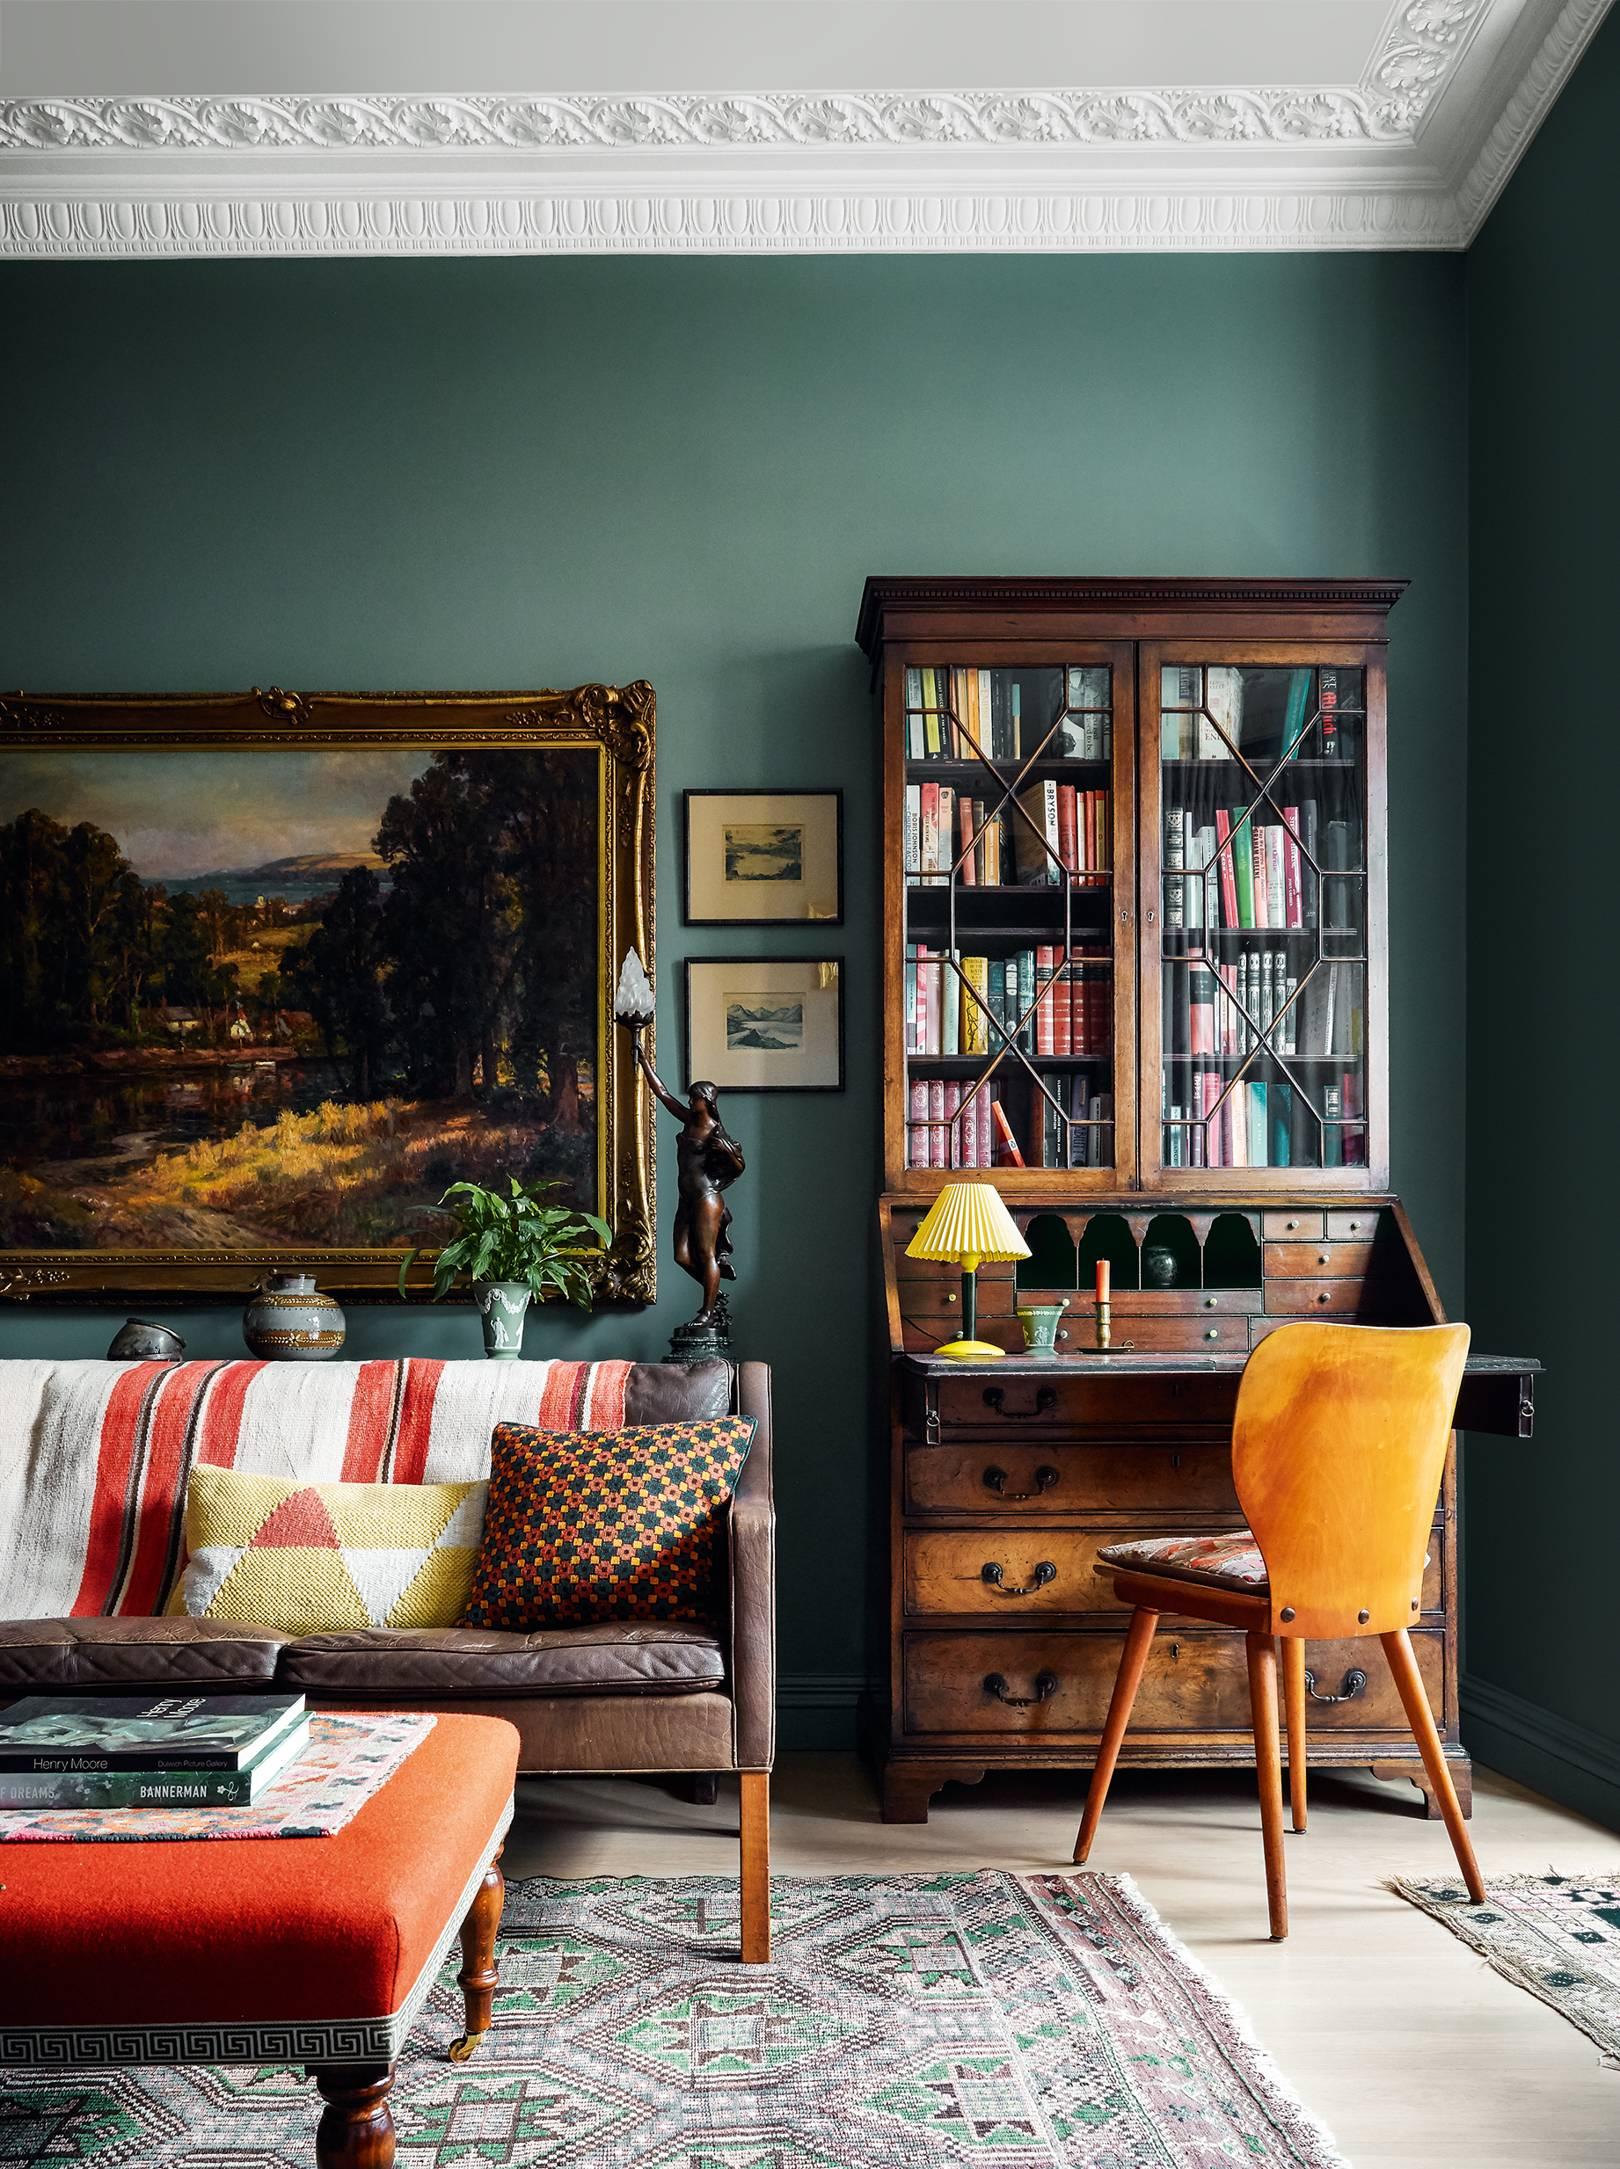 Brandon Schubert's Belsize Park flat is a winning combination of American and English styles